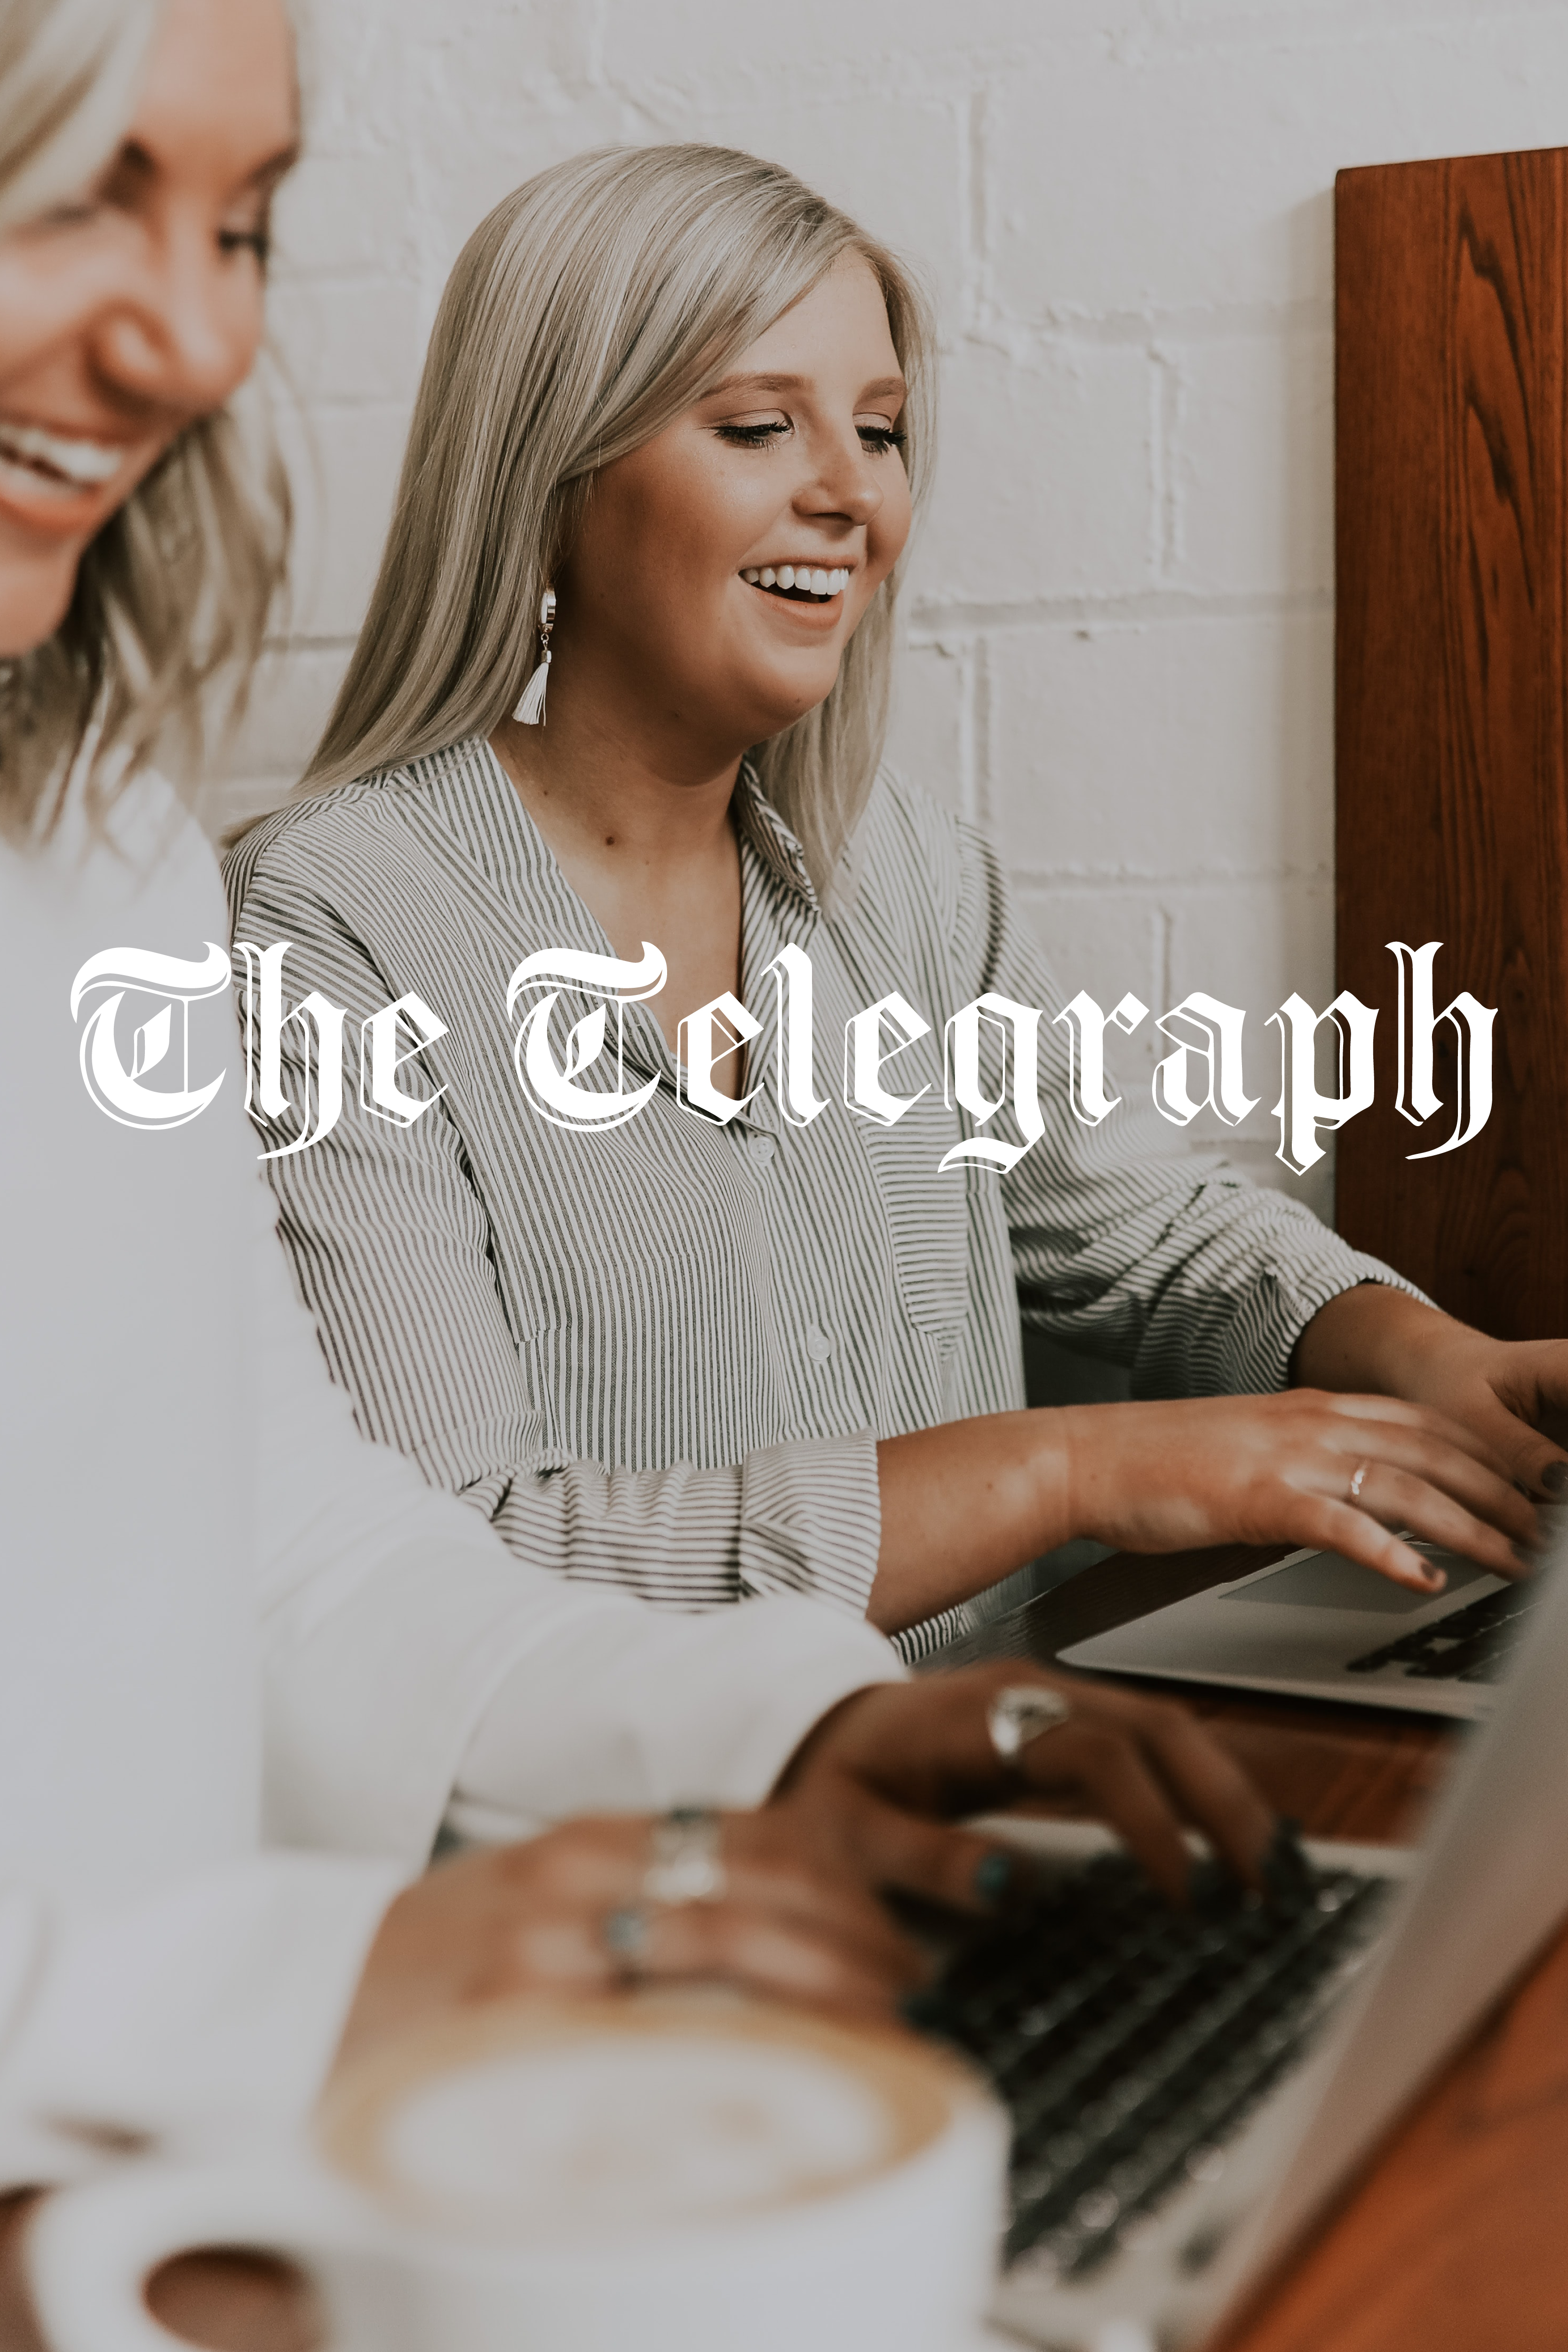 The Telegraph: How to nail your online interview